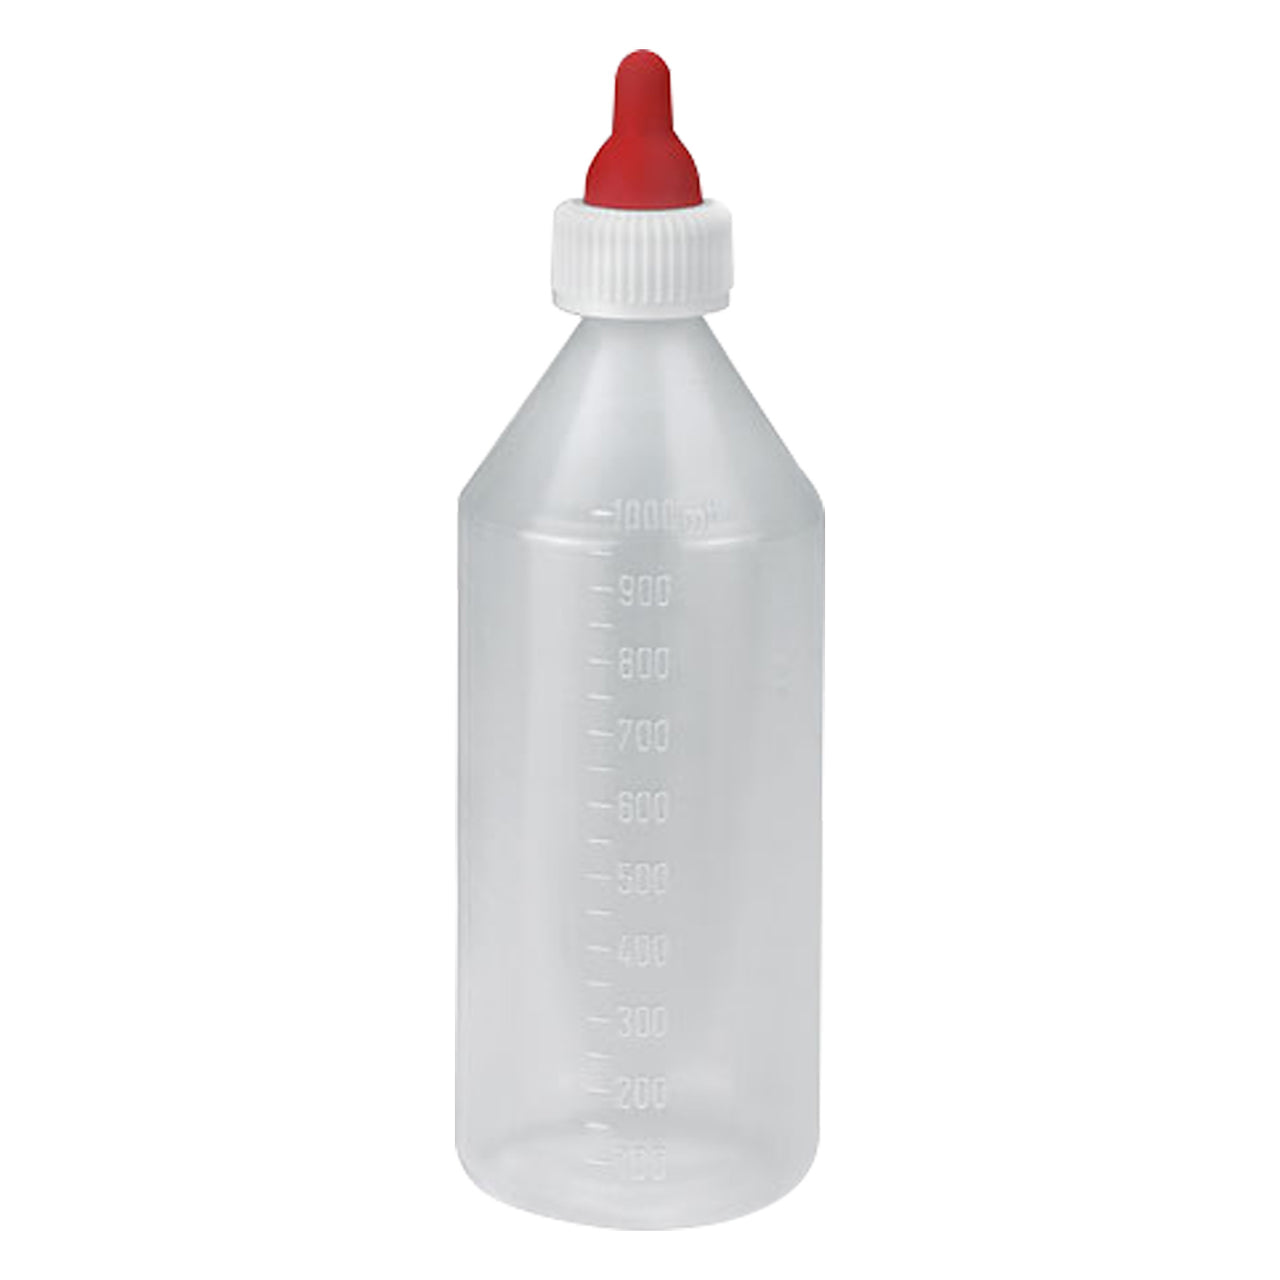 Kerbl Lamb Bottle Screw Nipple (Included) 1L - Nursing Weaning And Fluid Feeding Kerbl - Canada